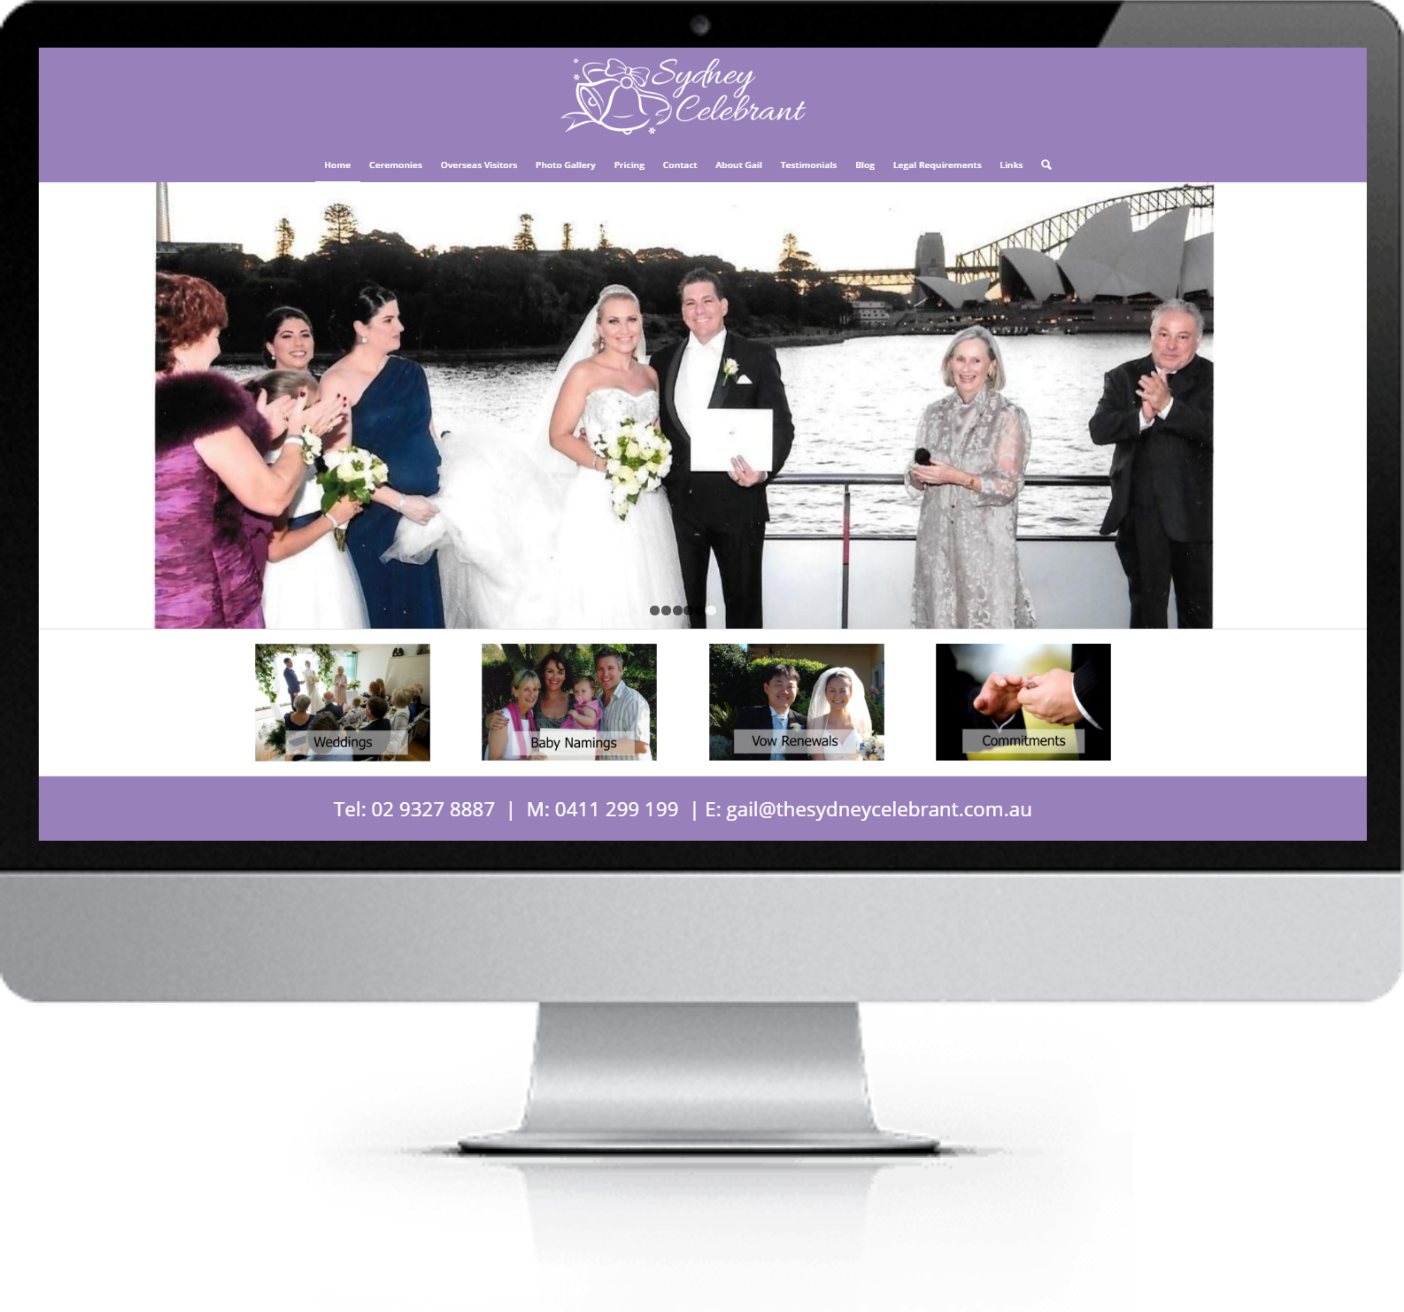 Website Redesign - The Sydney Celebrant - After